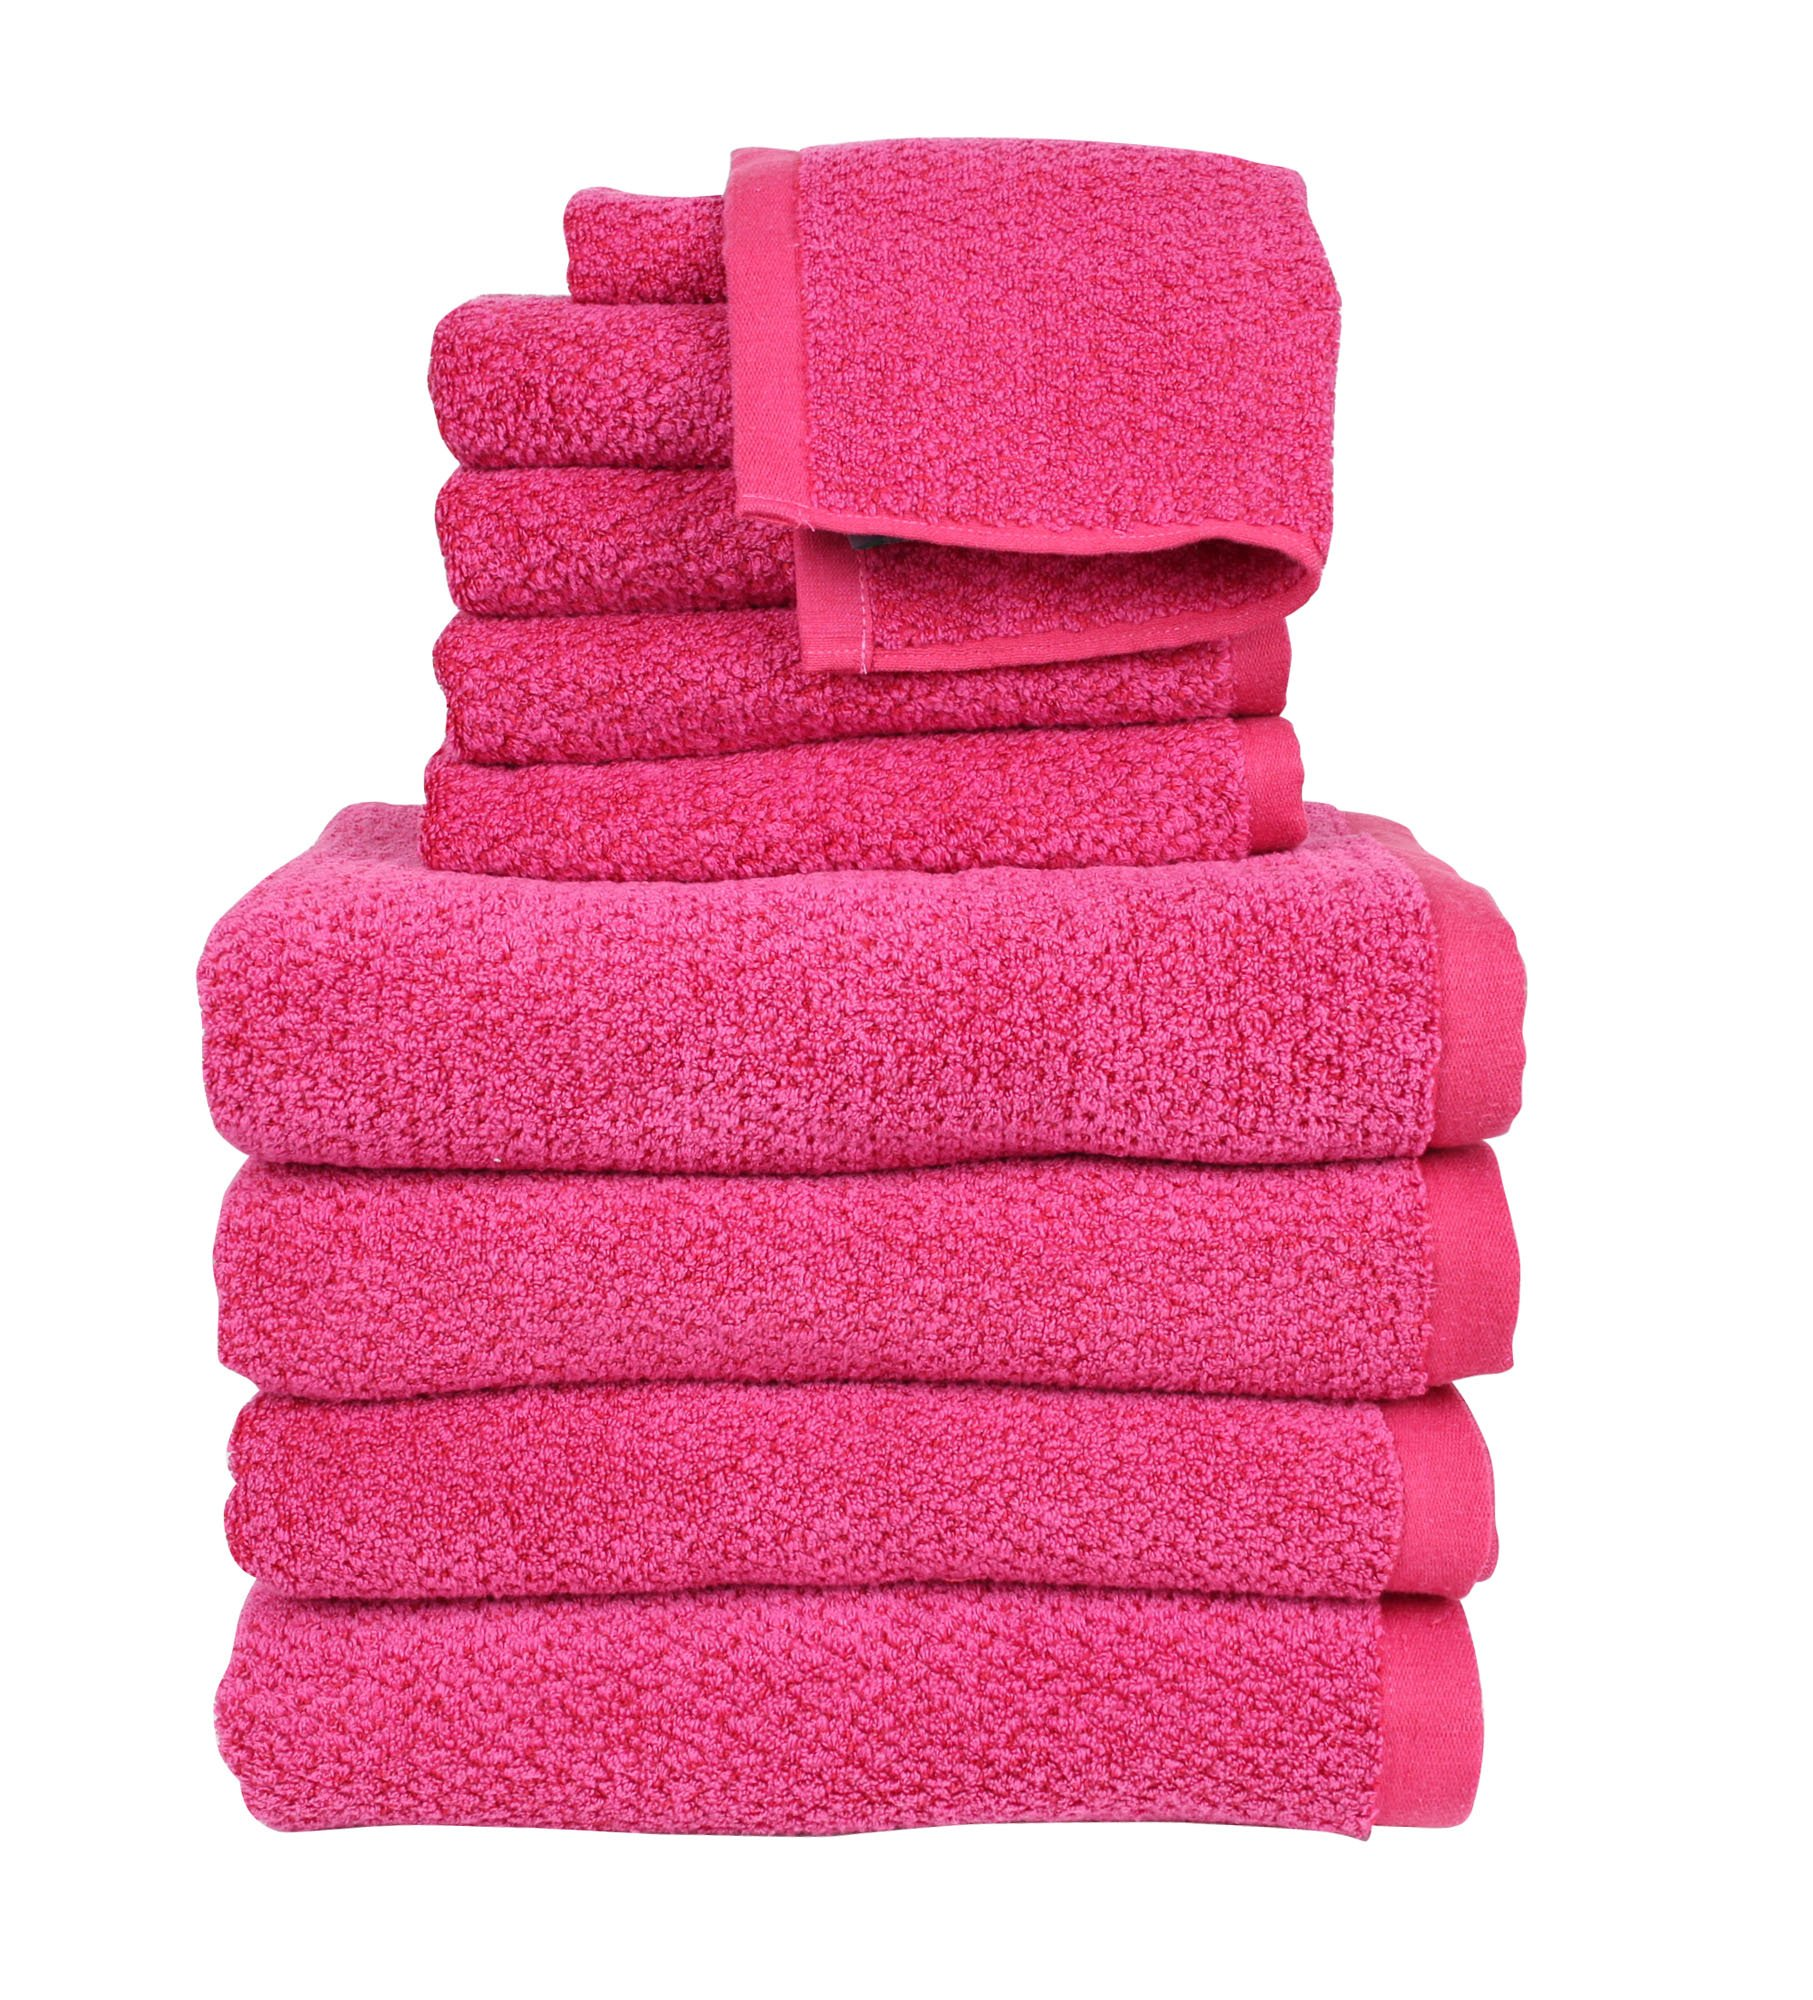 Everplush Diamond Jacquard, Bath Towel Set of 10, 4 Bath Towels, 4 Hand Towels, 2 Washcloths, Magenta